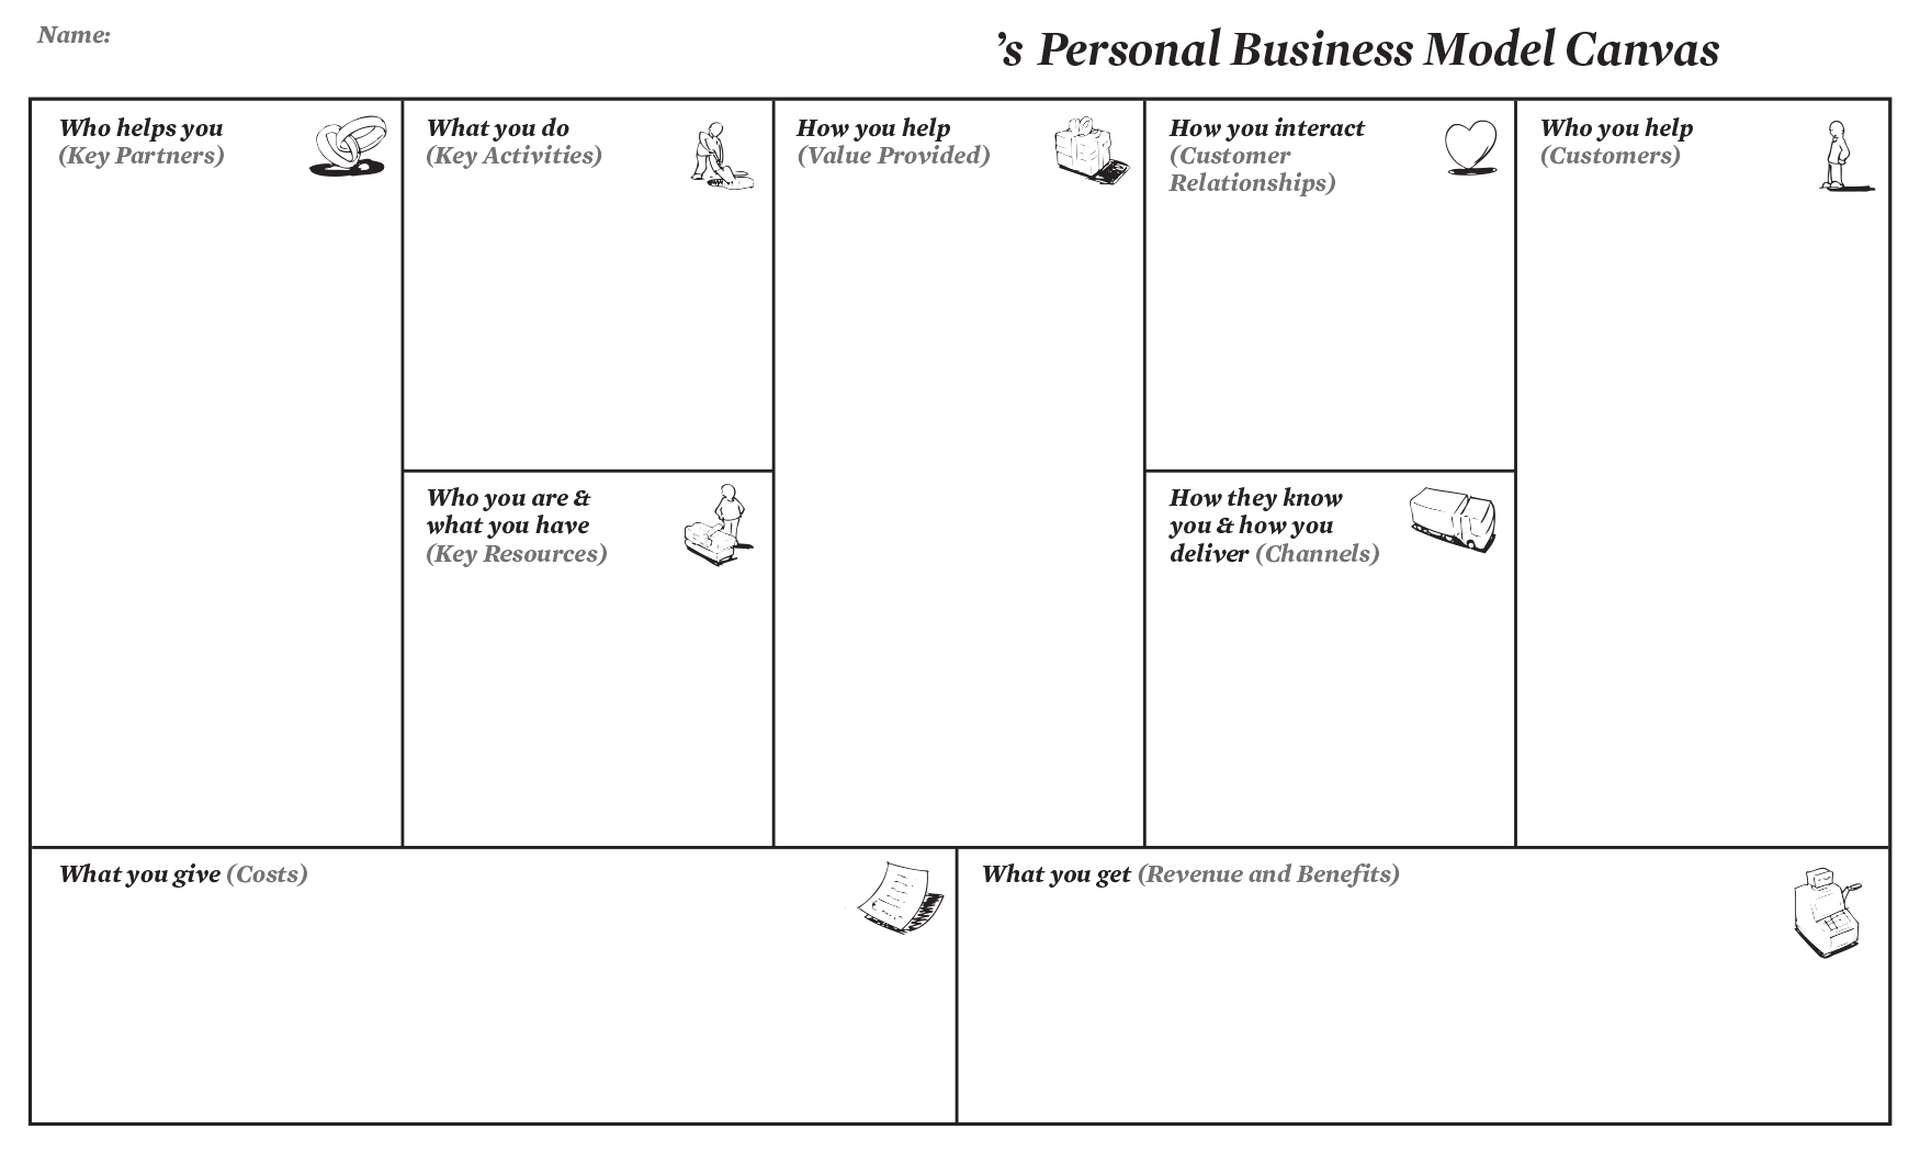 Personal Business Model Canvas in 2020 (With images